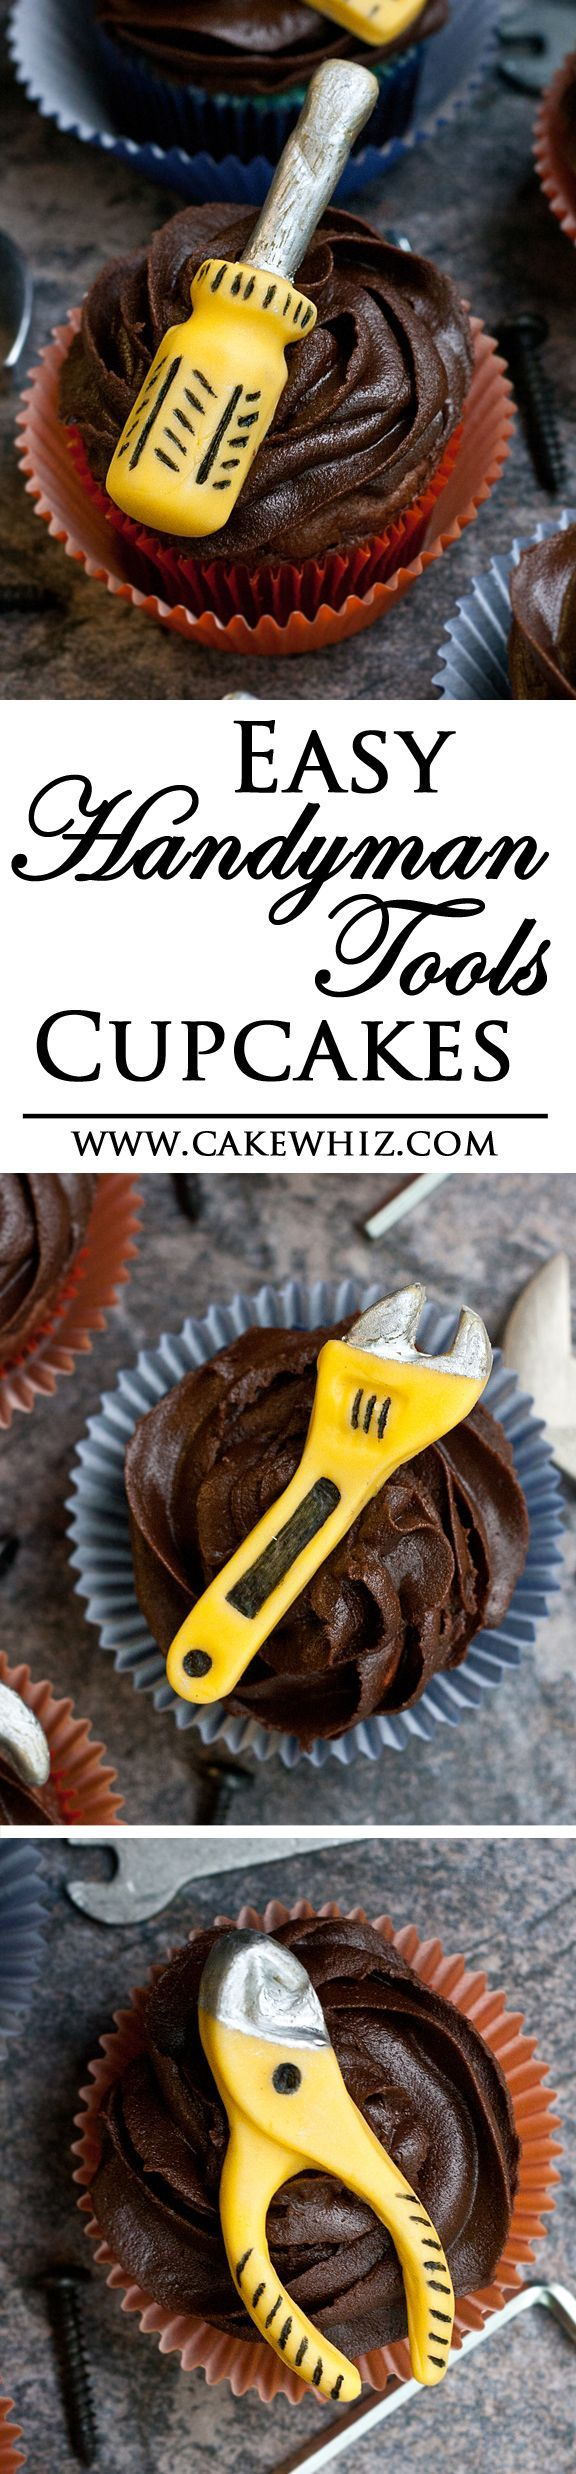 Use this step by step tutorial to make Father's day HANDYMAN TOOLS CUPCAKES. Fun and easy edible craft that kids can help make too! From cakewhiz.com